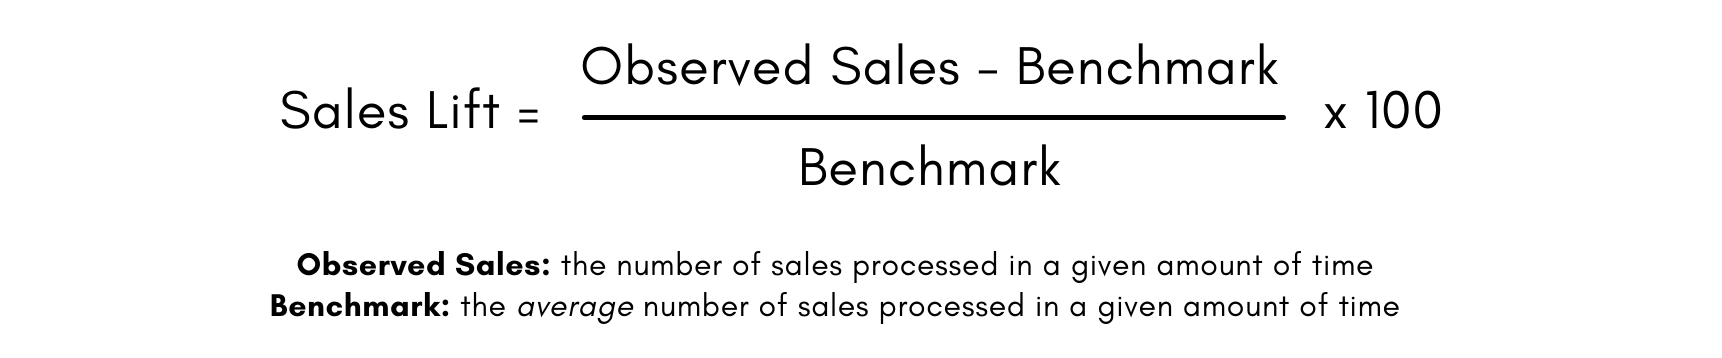 Formula for Sales Lift: Number of New sales minus the benchmark, divided by the benchmark, times 100.